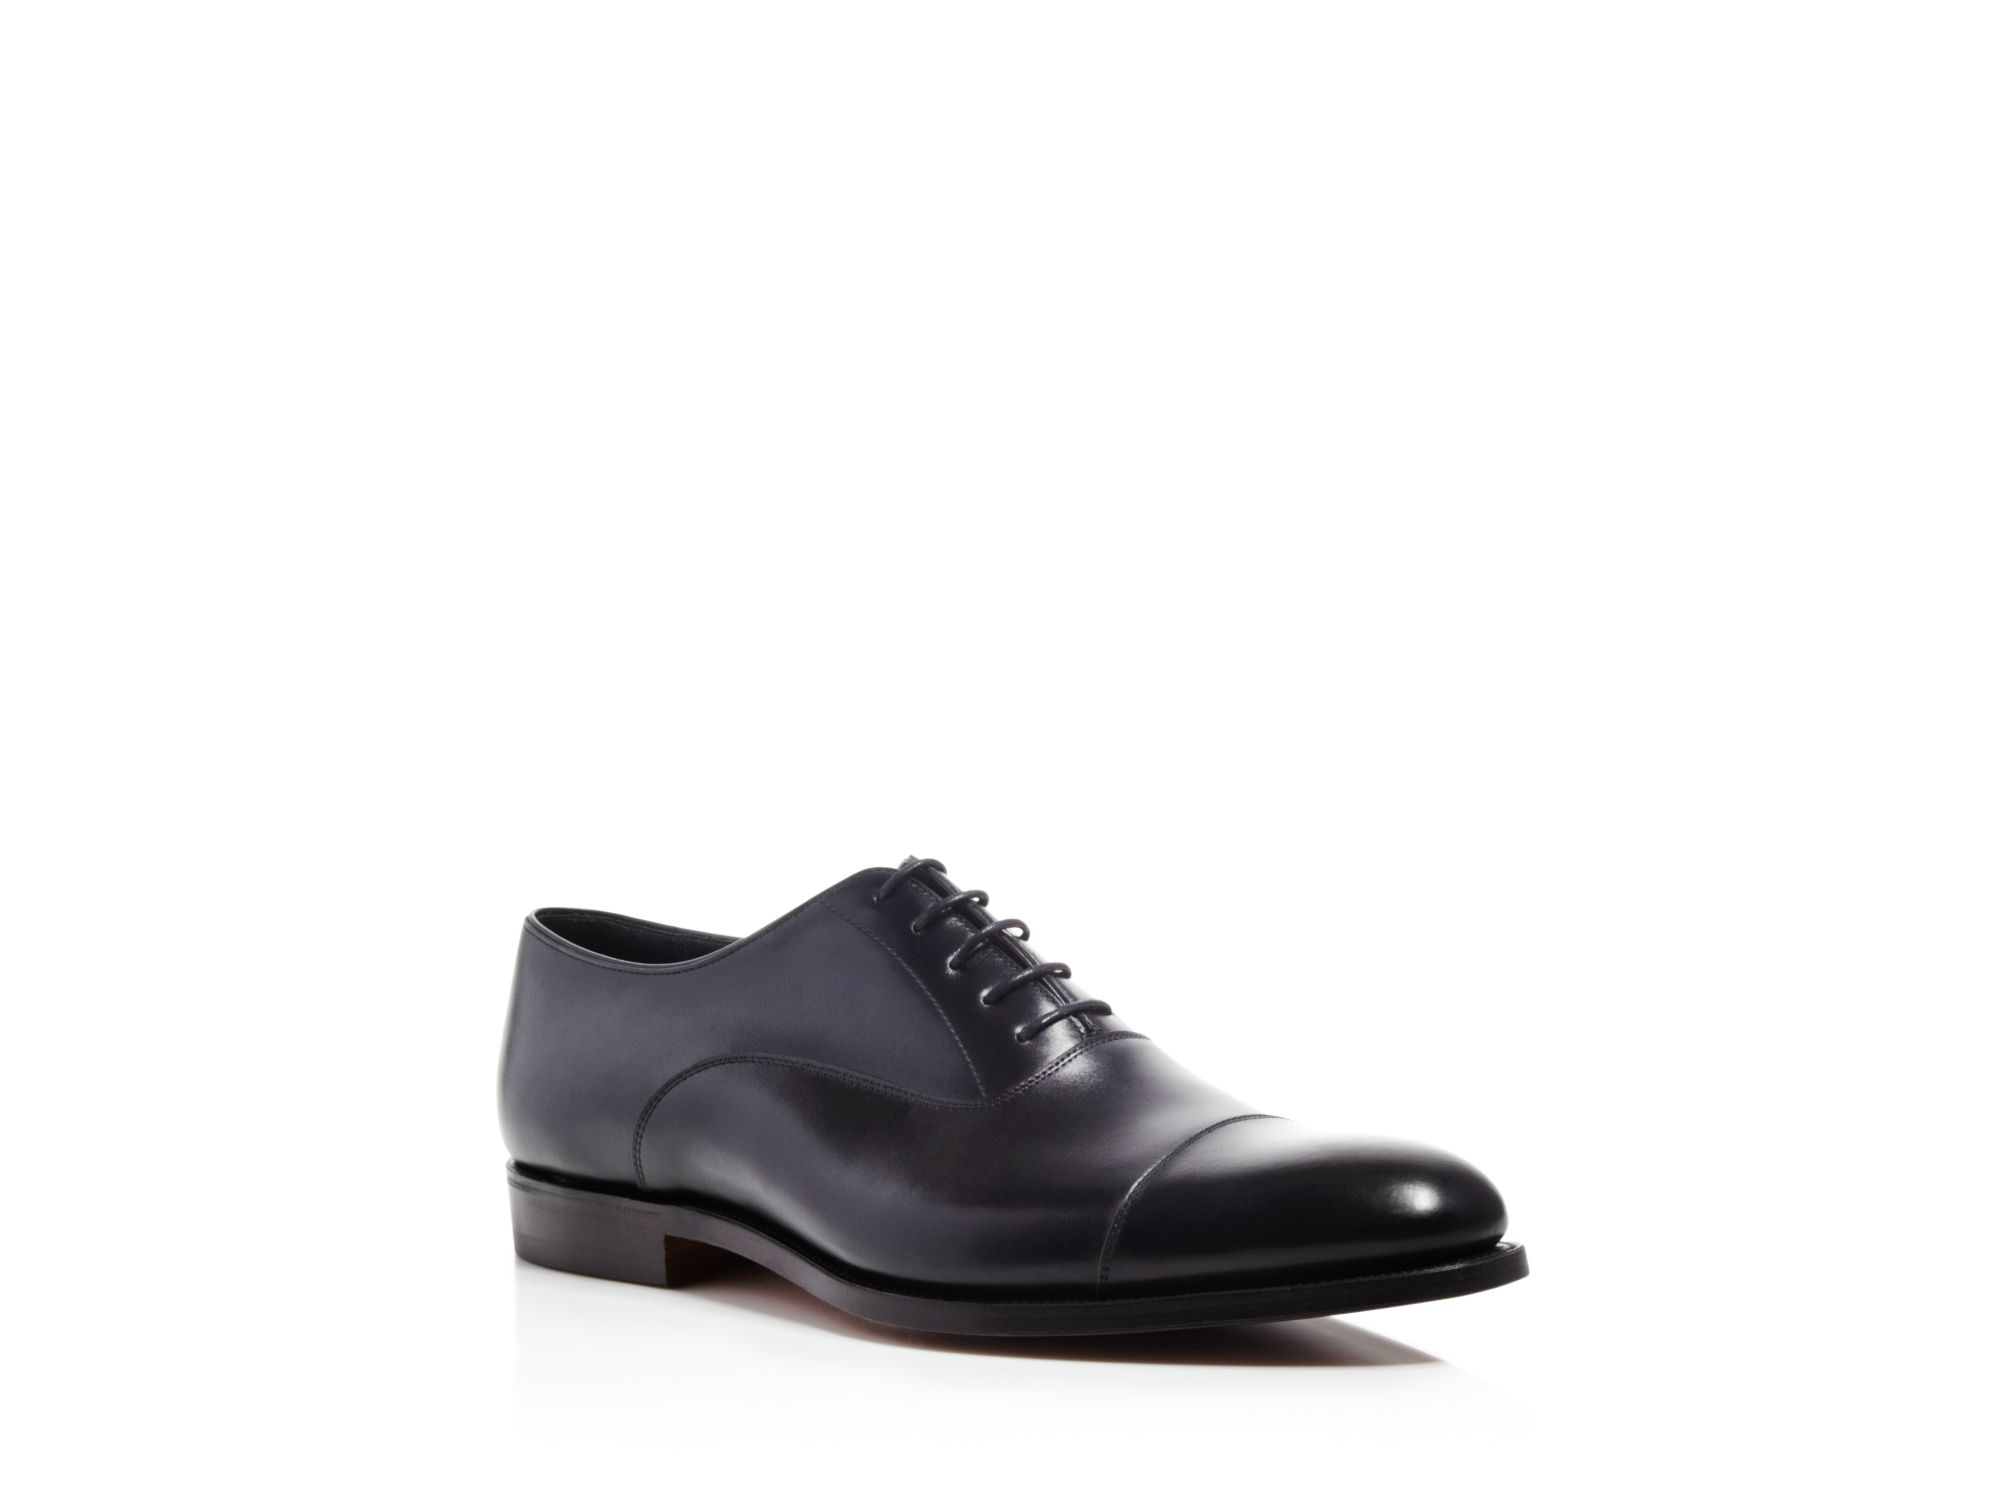 Lyst - Alfred Sargent Derby Cap Toe Oxfords in Black for Men 9c60d5be6795